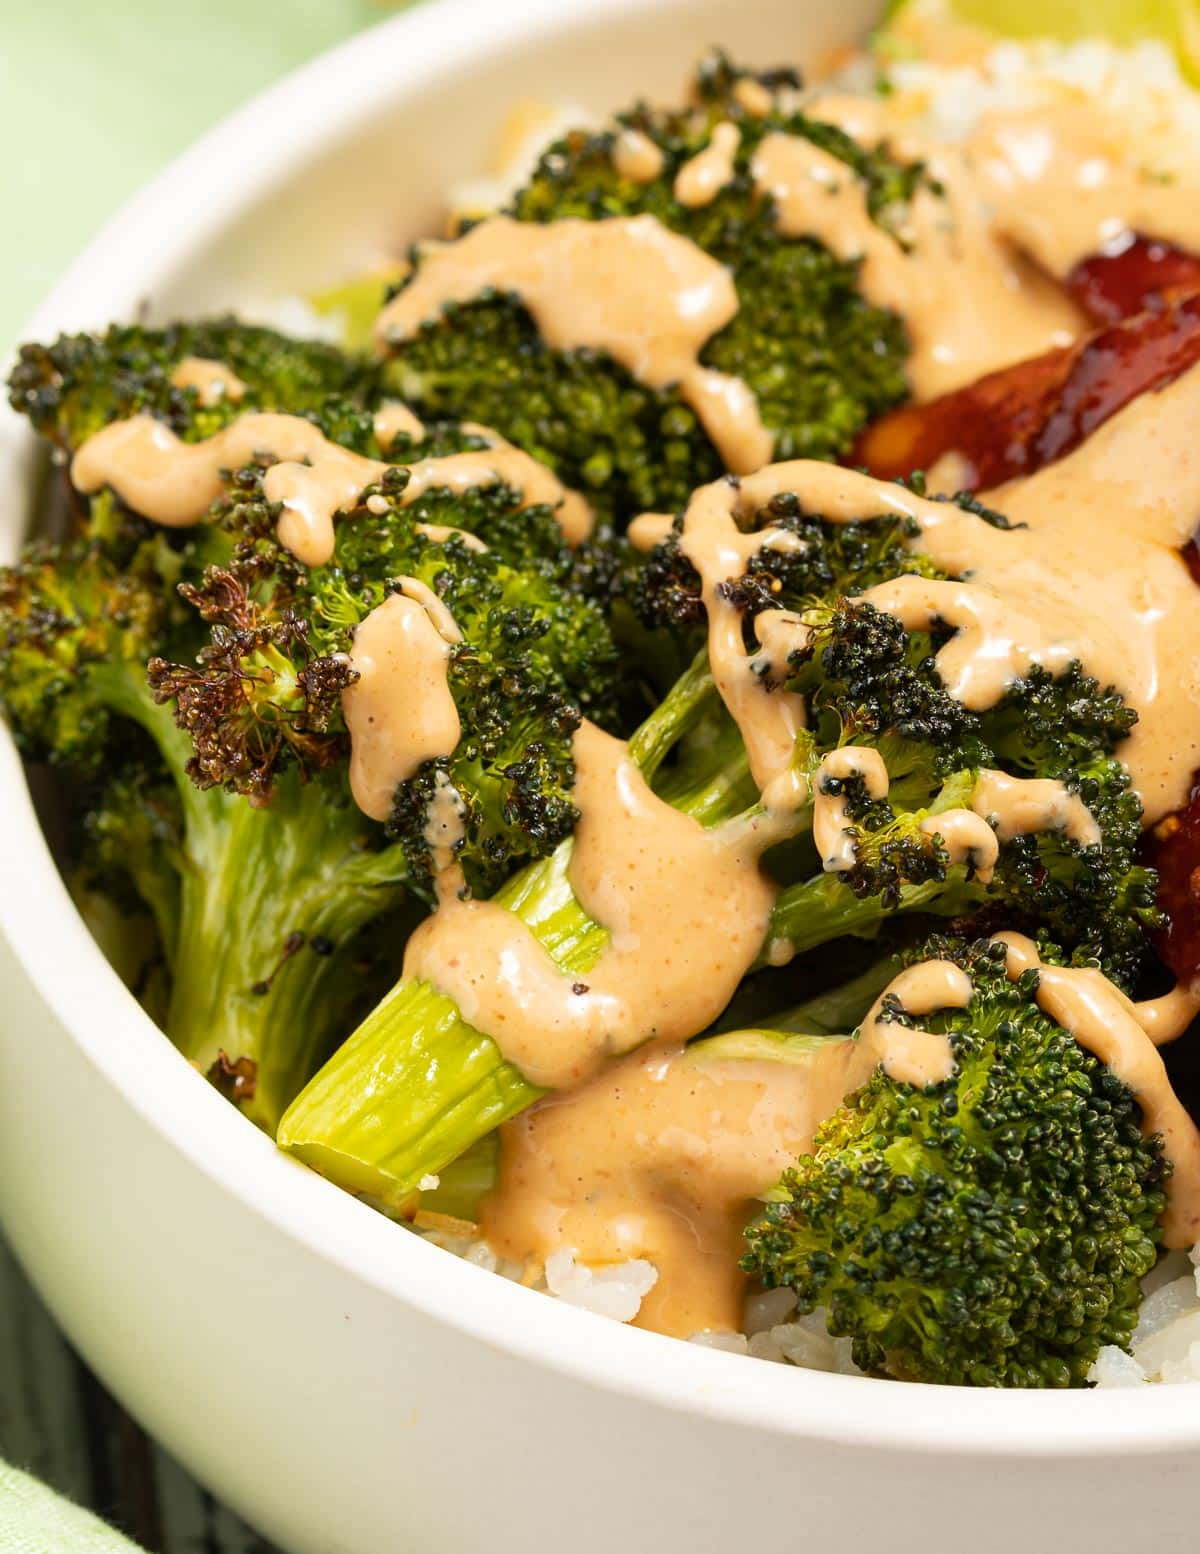 Broccoli with a drizzle of sauce